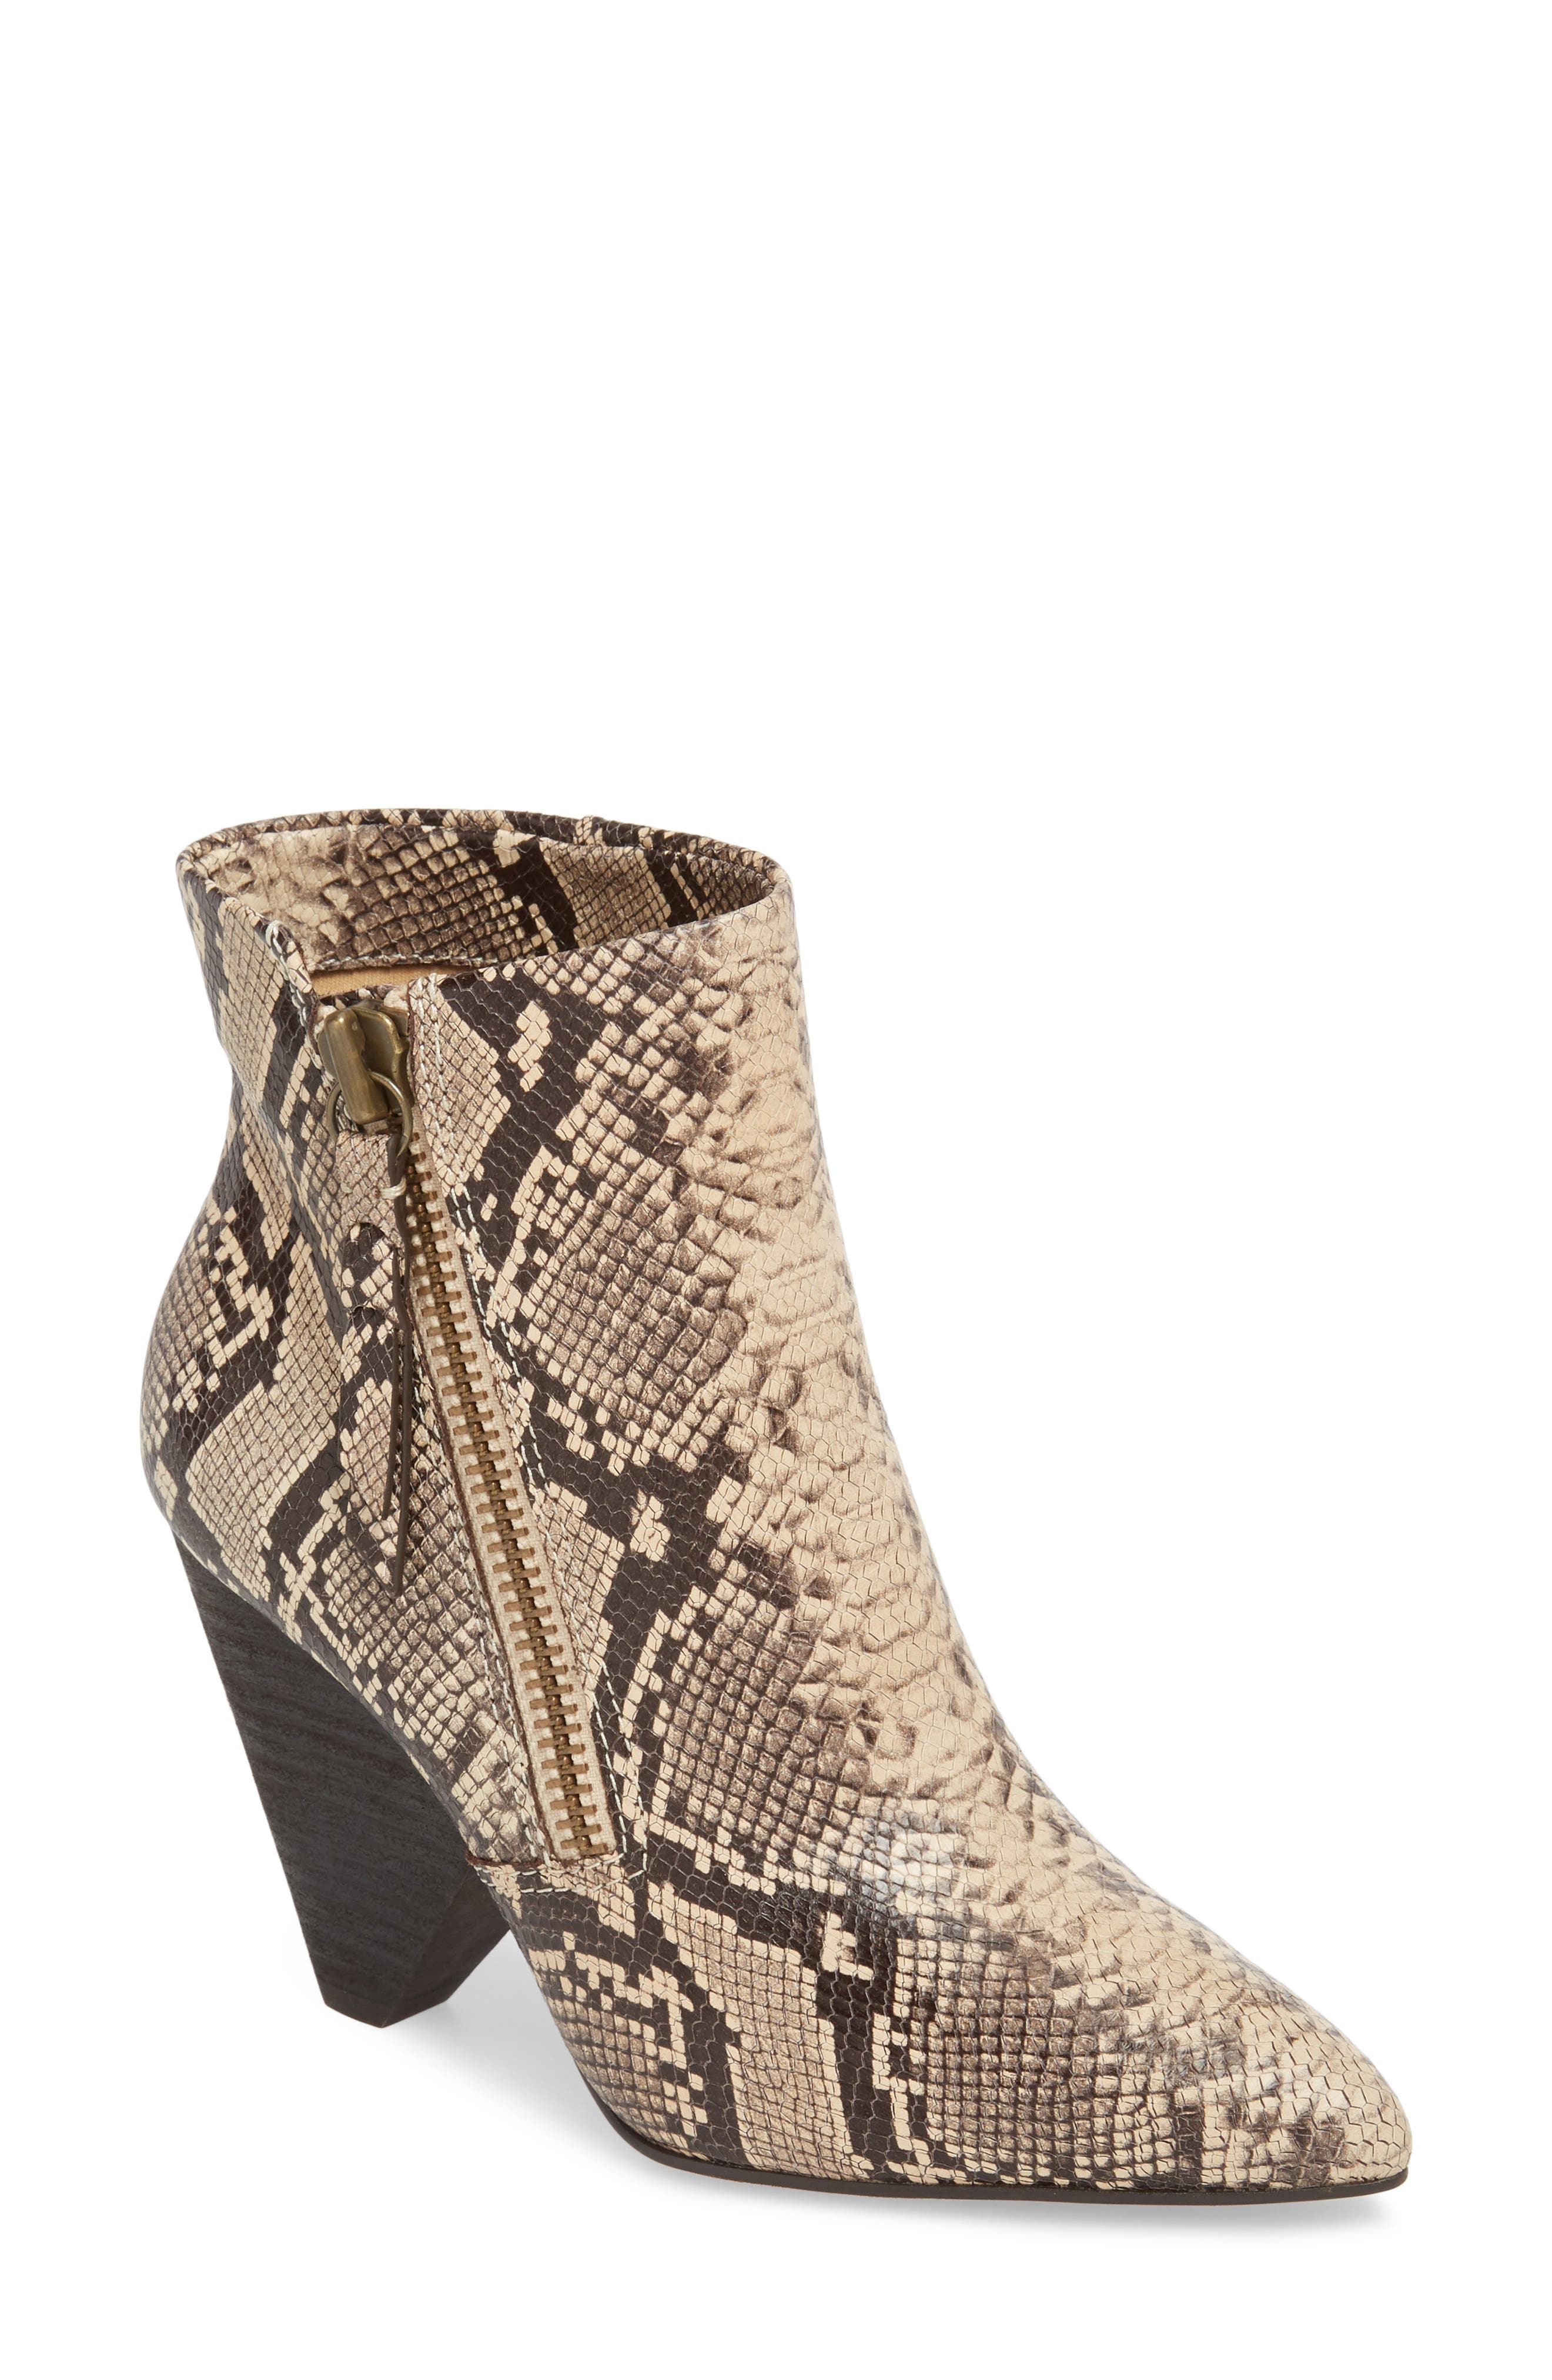 Neva II Bootie,                             Main thumbnail 1, color,                             NATURAL EMBOSSED SNAKE LEATHER